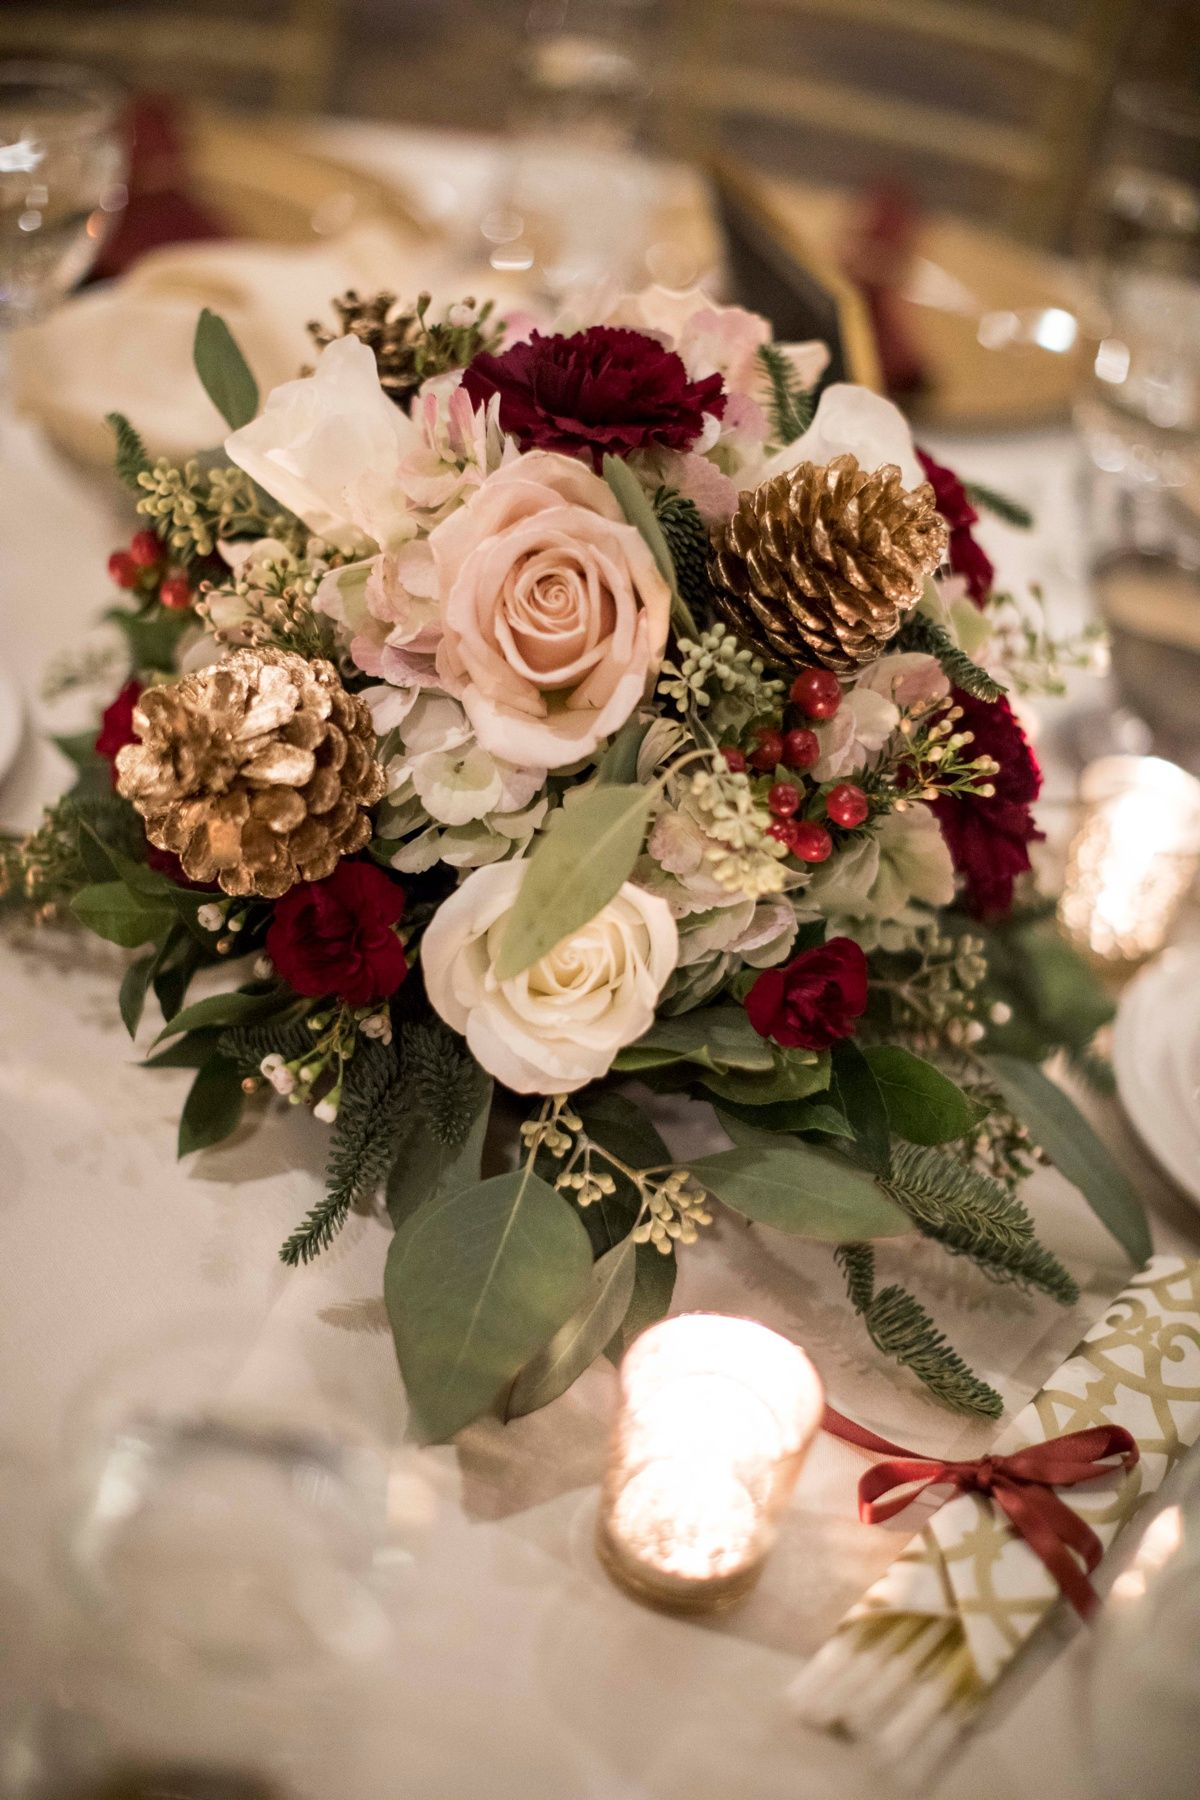 Warm December Wedding at the Embassy Suites